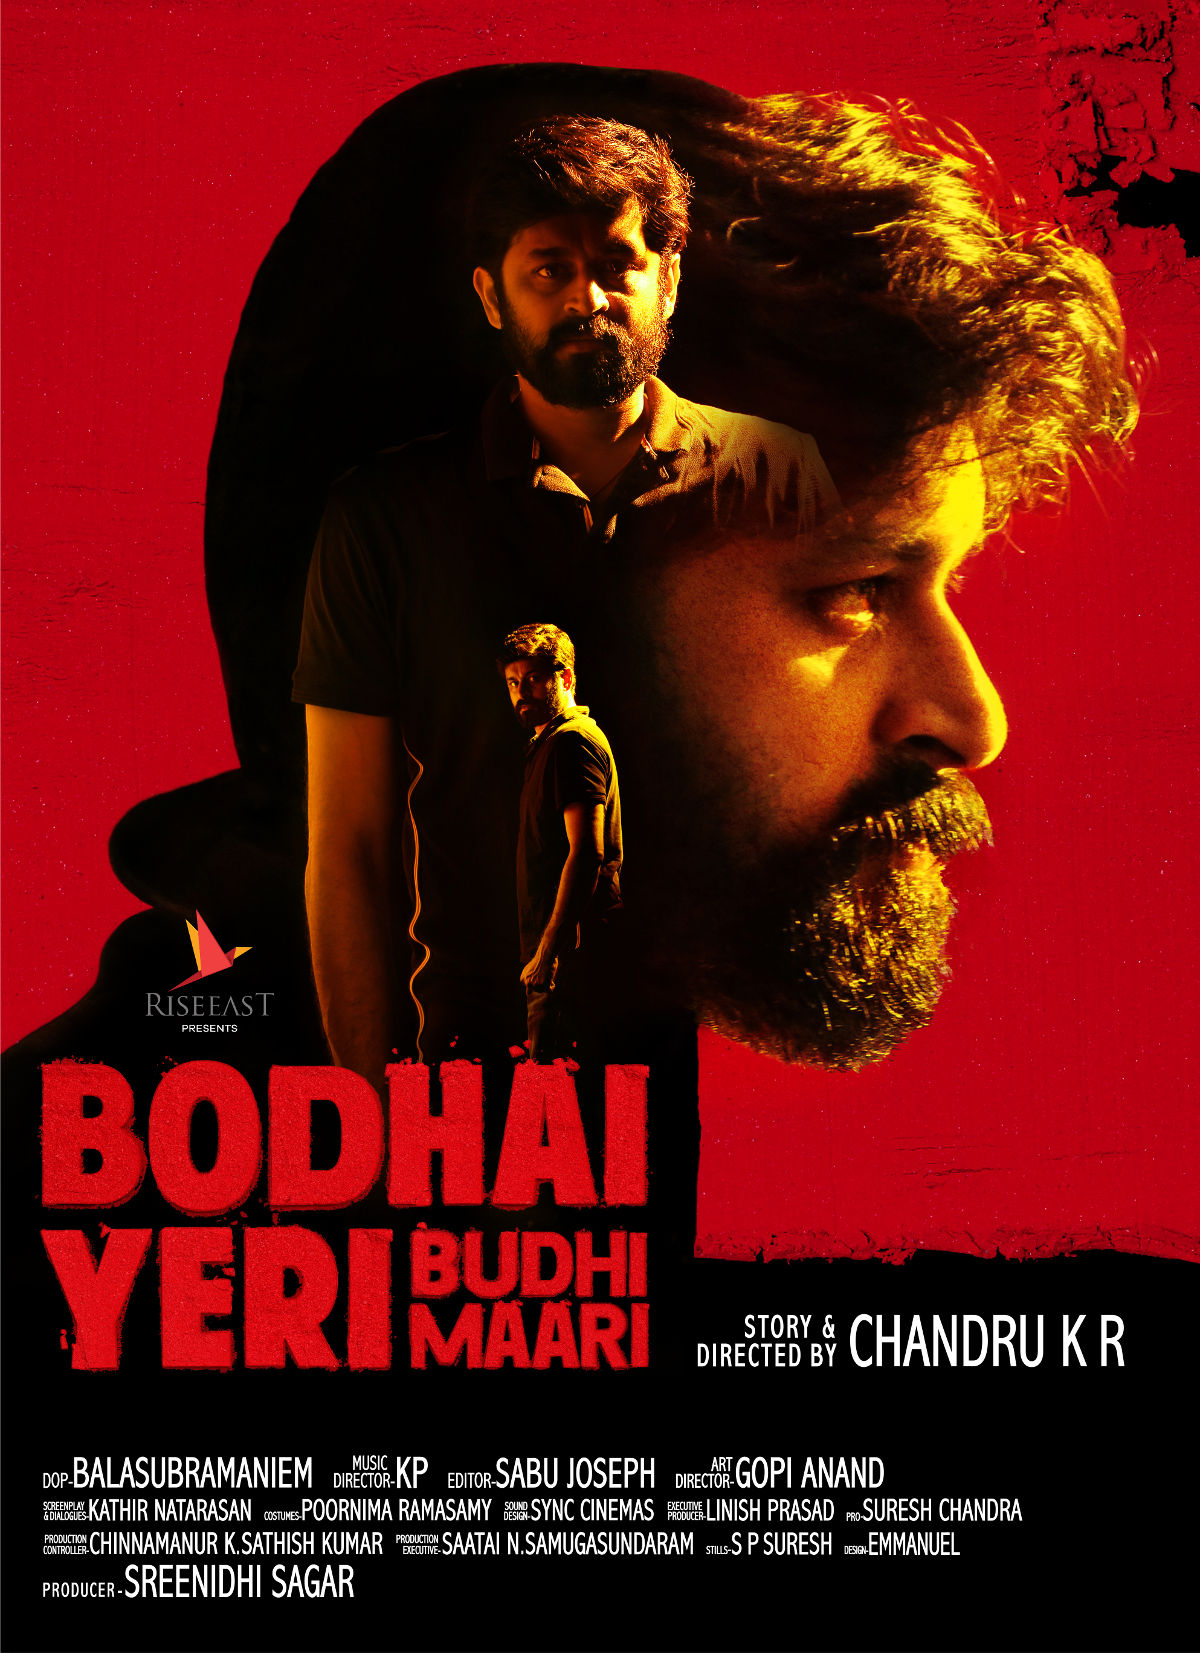 Hero Dheeraj Bodhai Yeri Budhi Maari Movie Poster